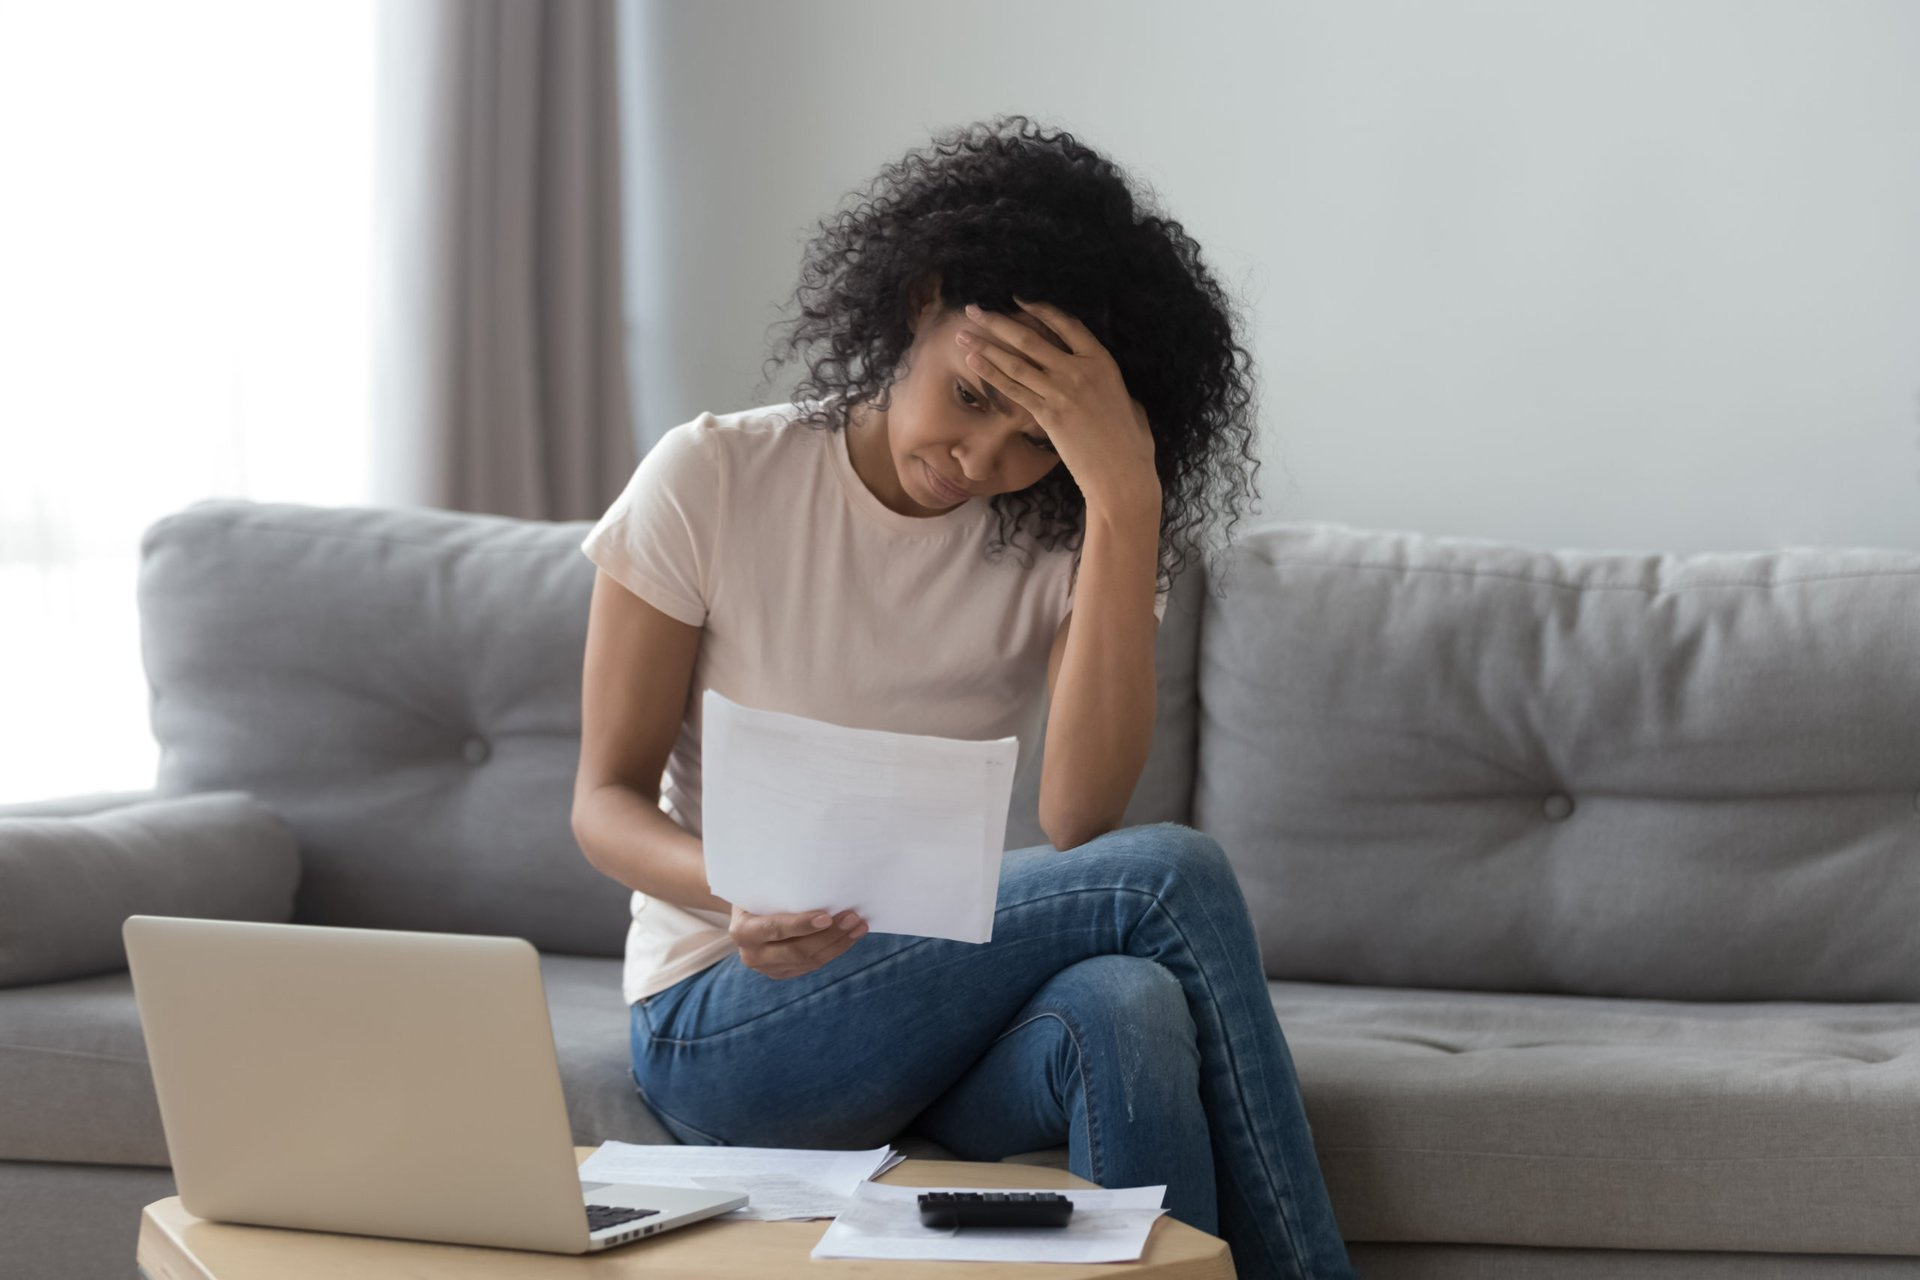 A stressed young woman worries about financial documents and bills over her laptop computer